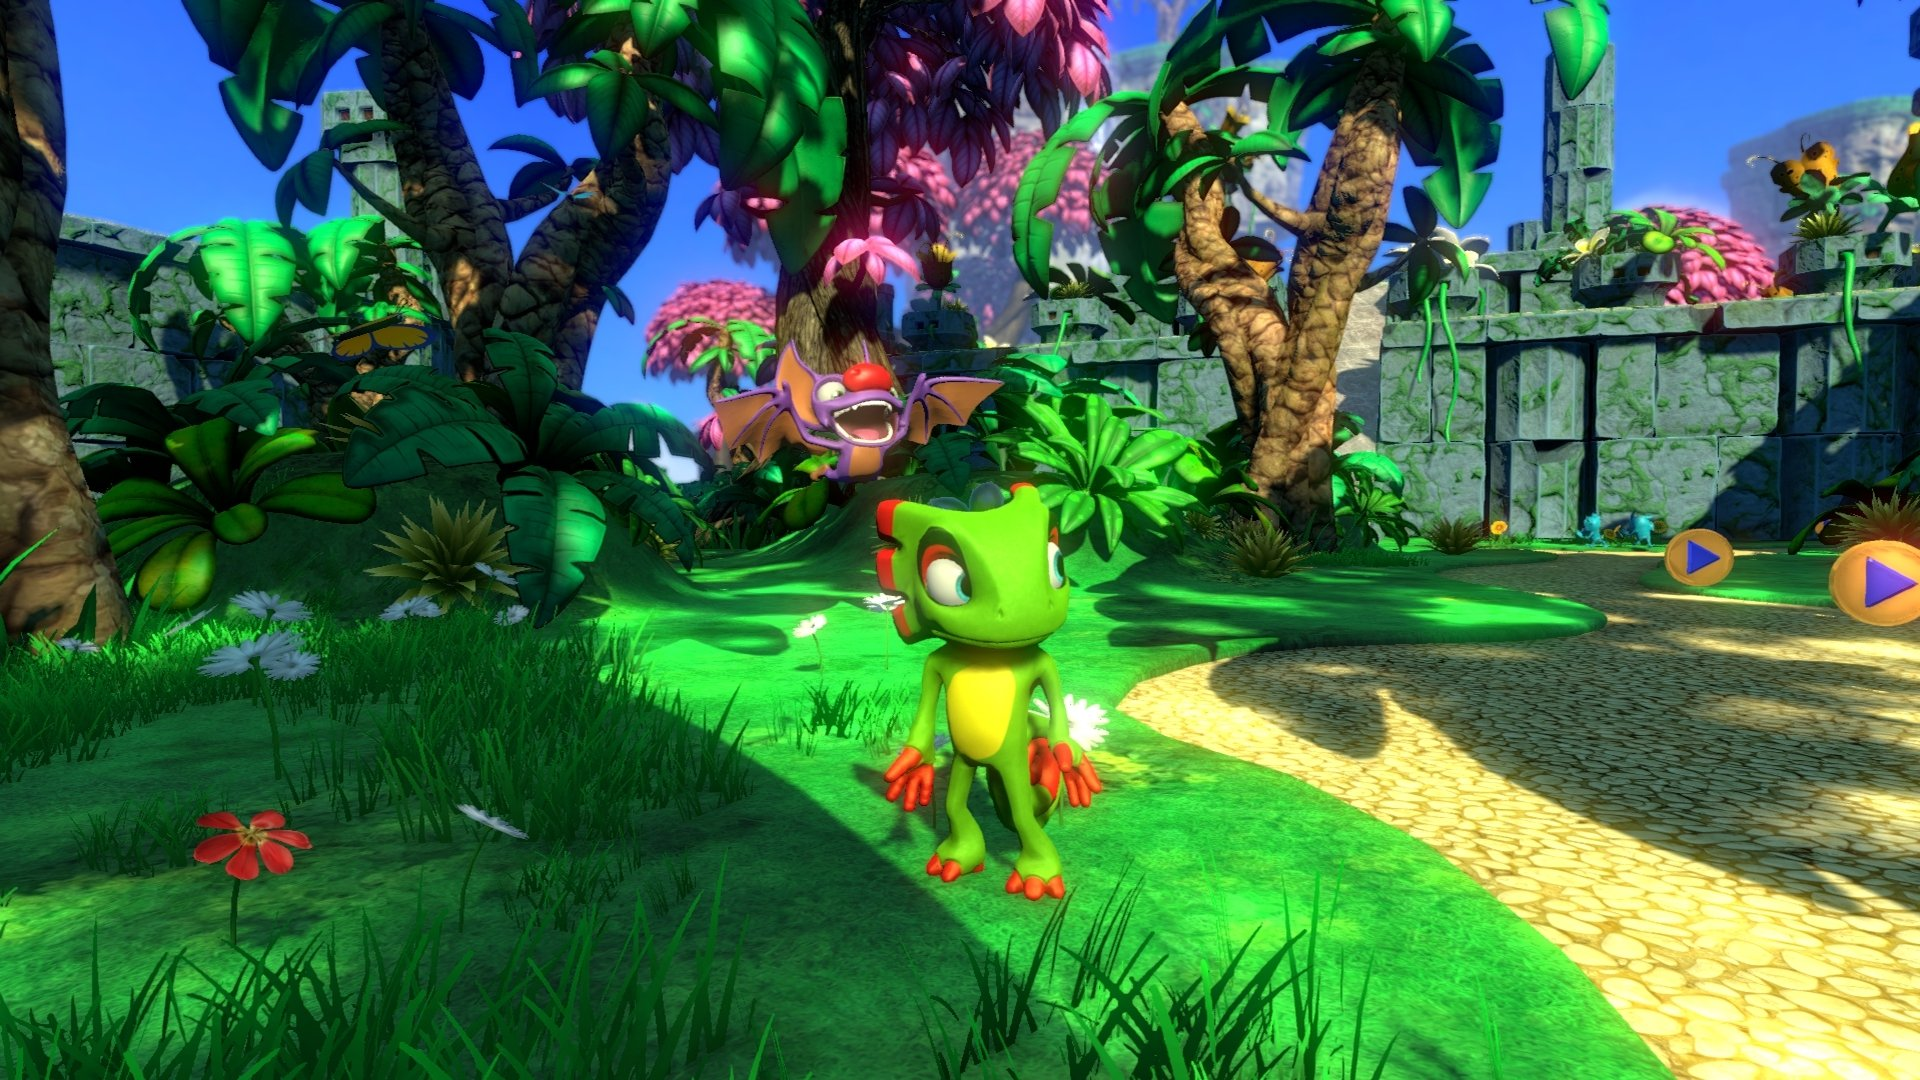 Video Game - Yooka-Laylee  Wallpaper